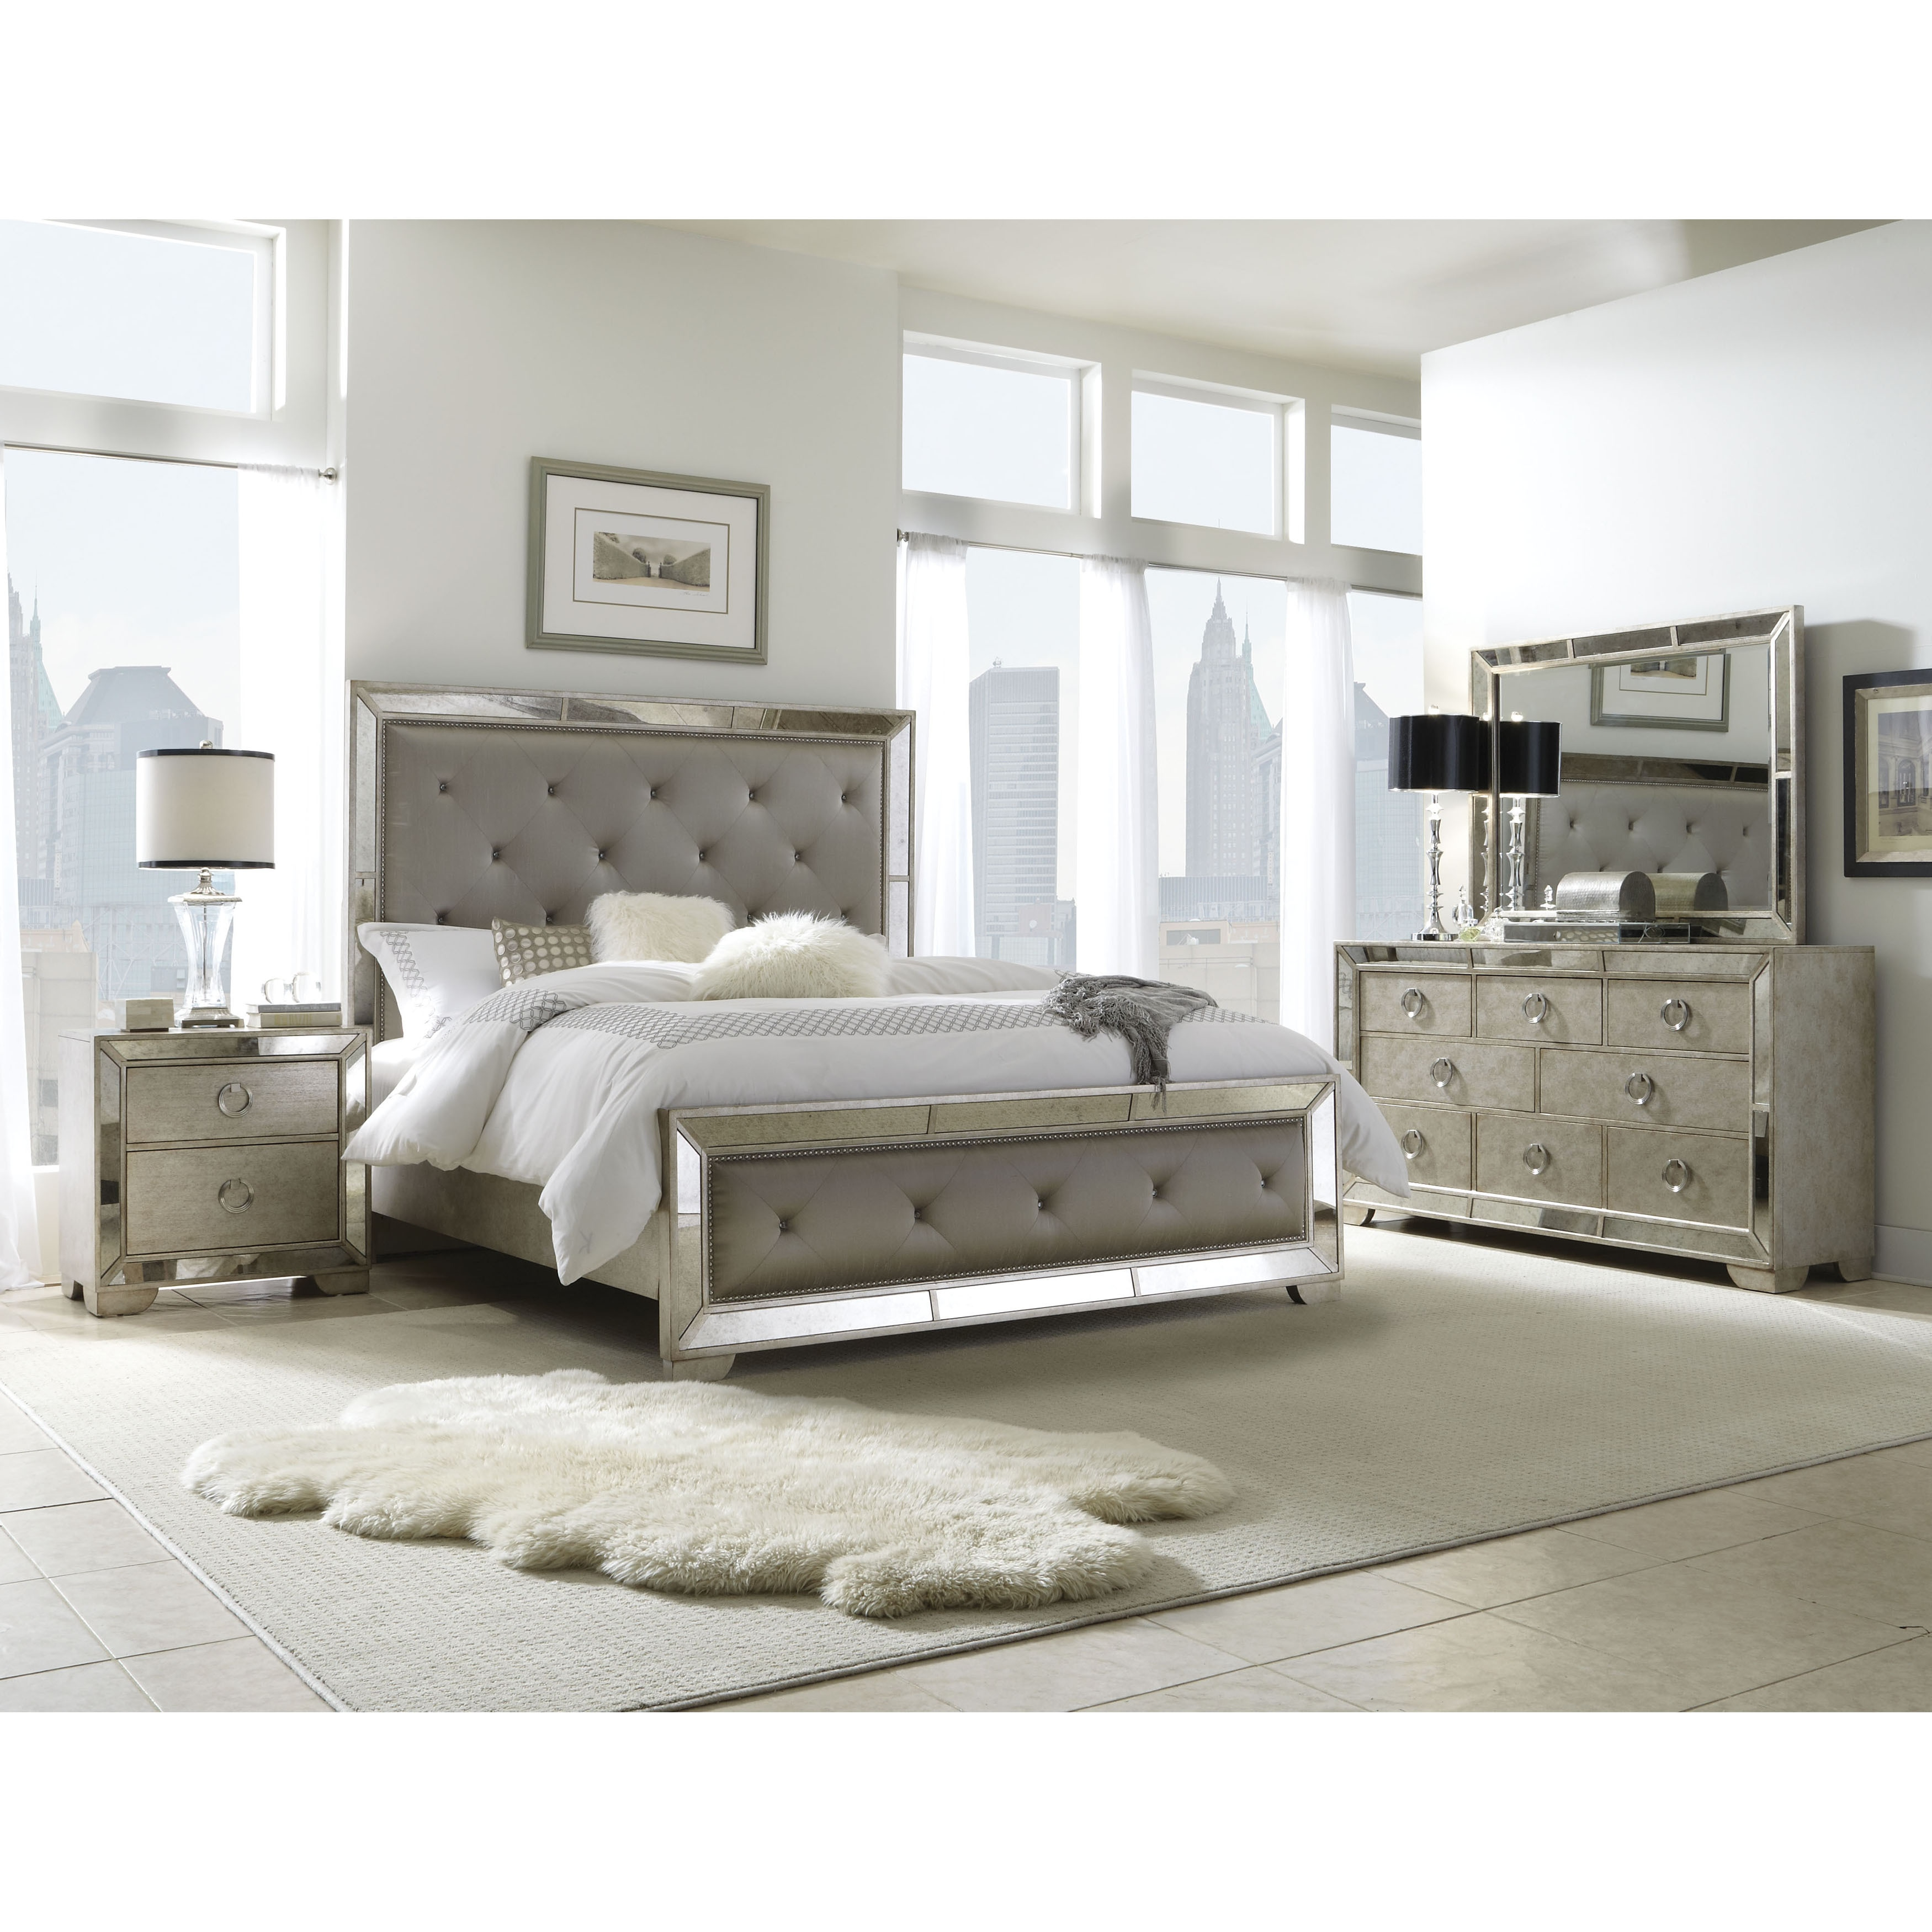 Celine 6-piece Mirrored and Upholstered Tufted King Bedroom Set